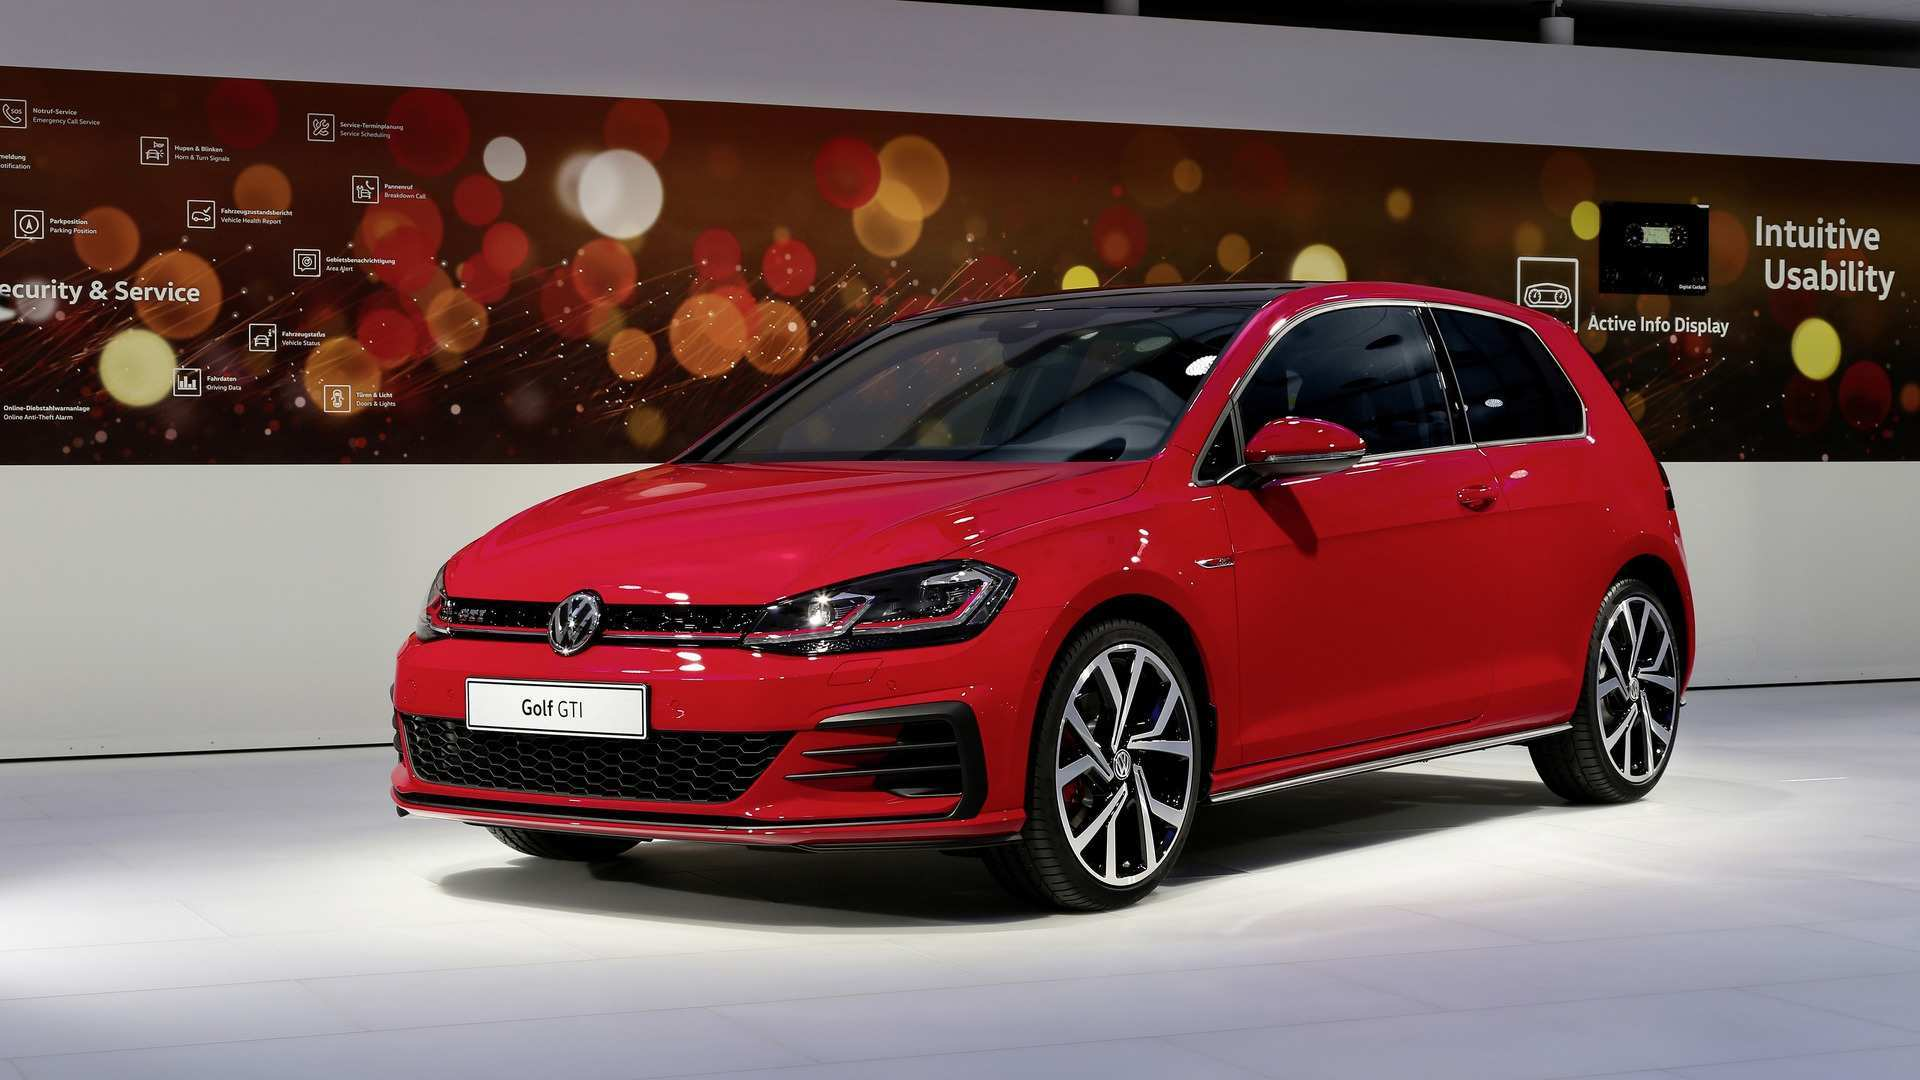 37 All New Volkswagen Golf Gtd 2020 Model